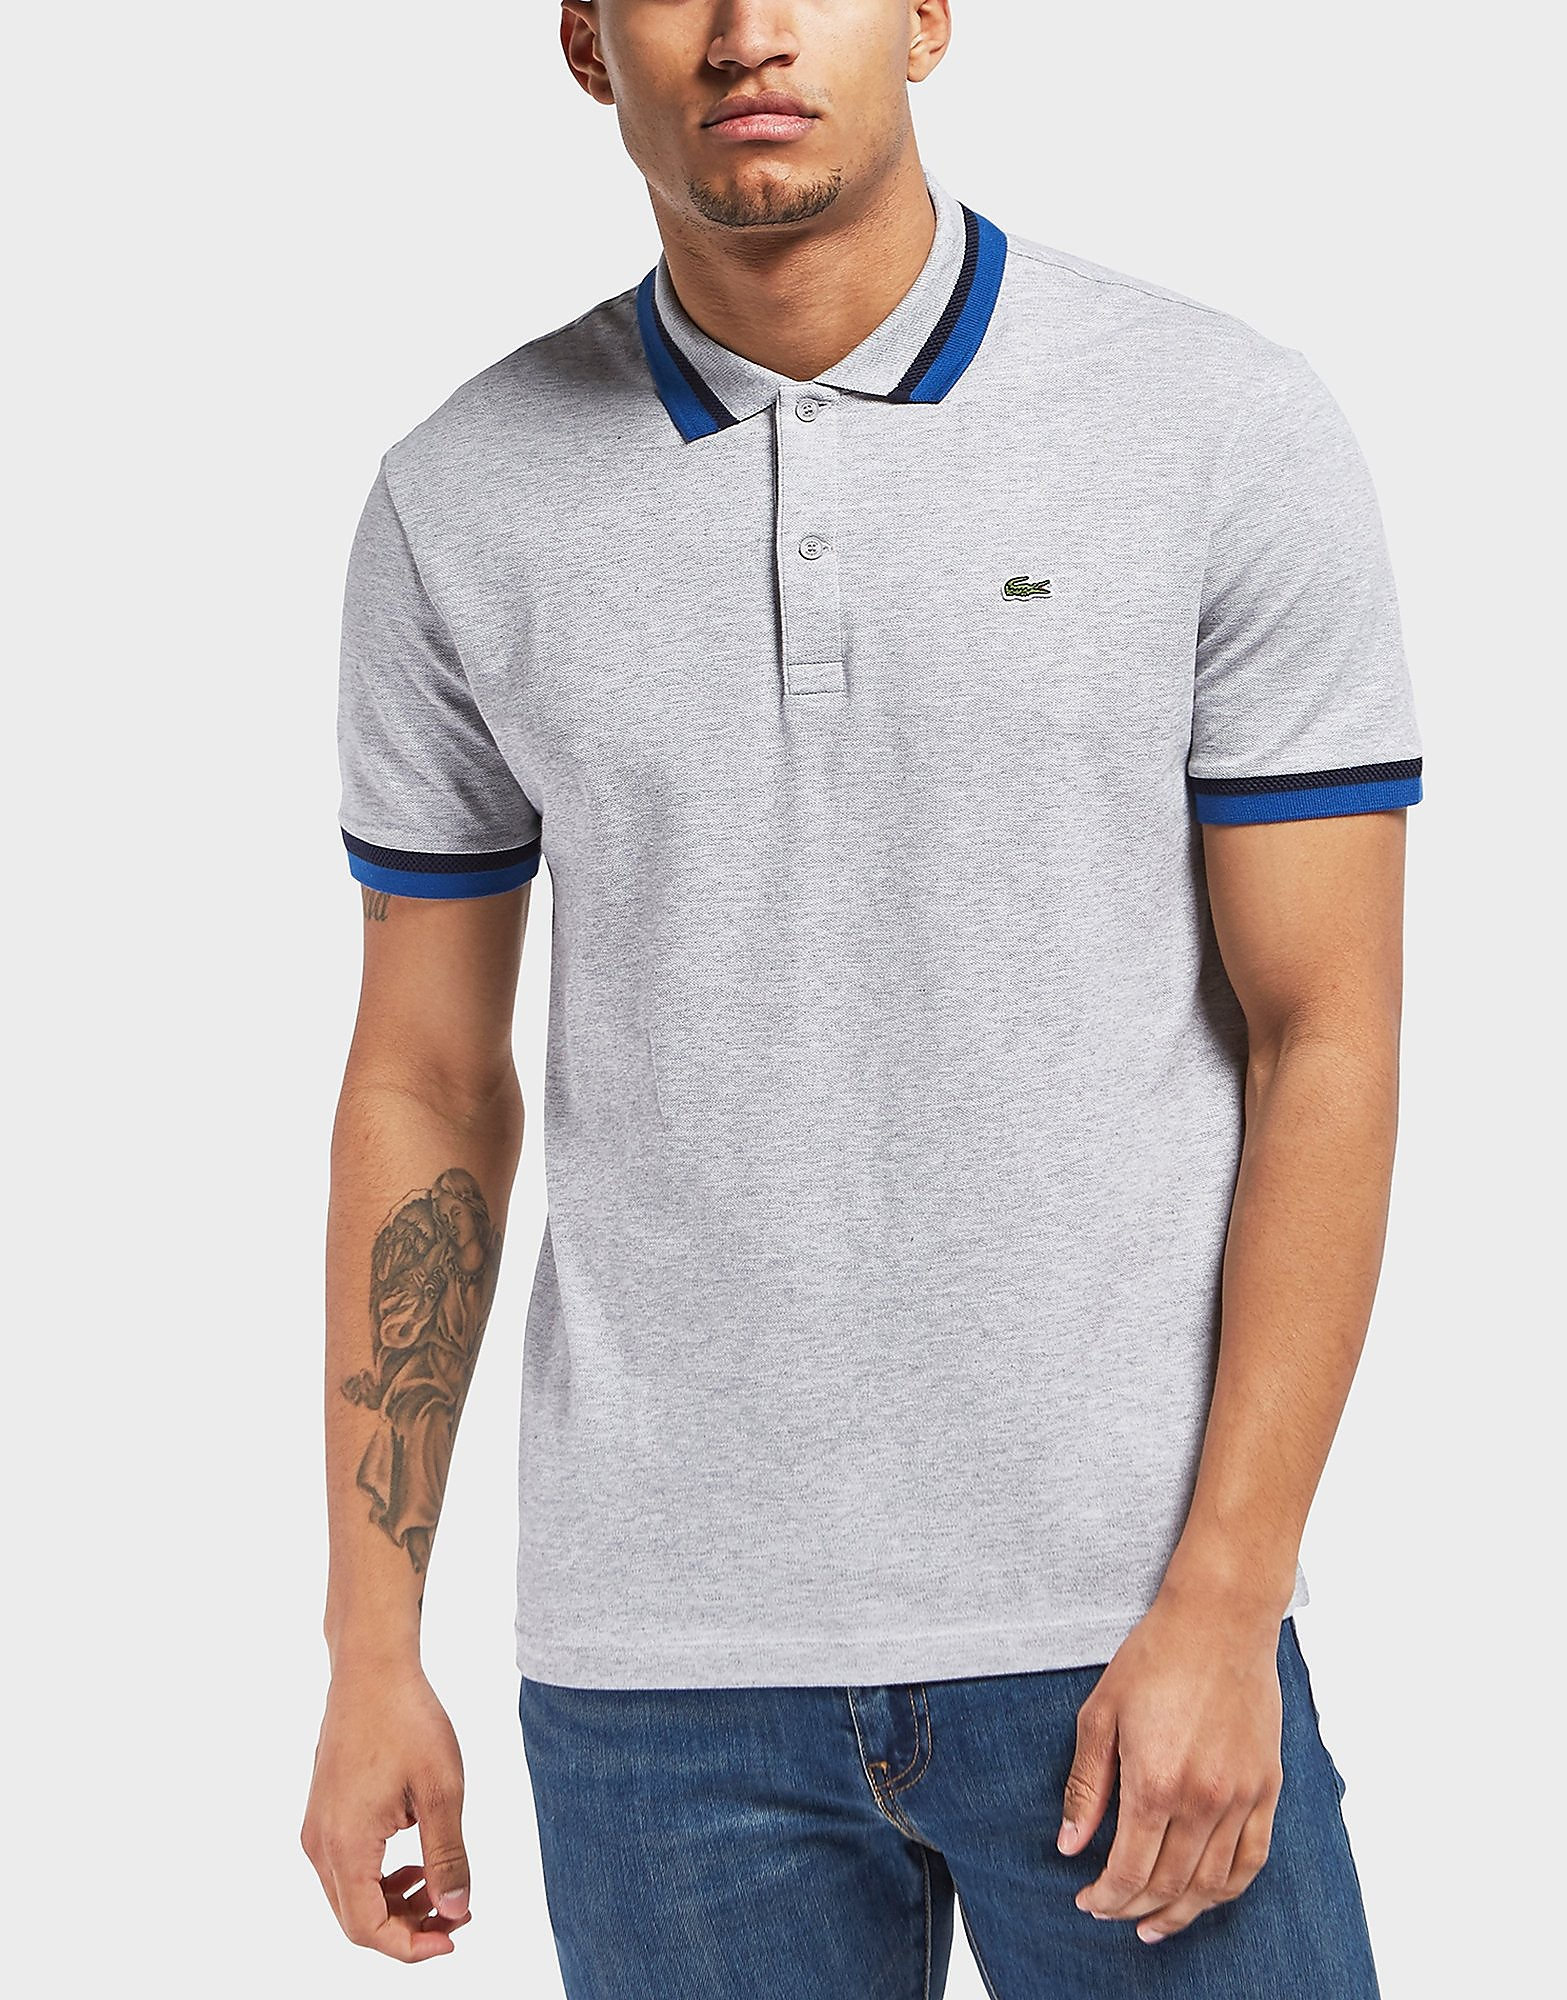 Lacoste Double Tipped Short Sleeve Polo Shirt